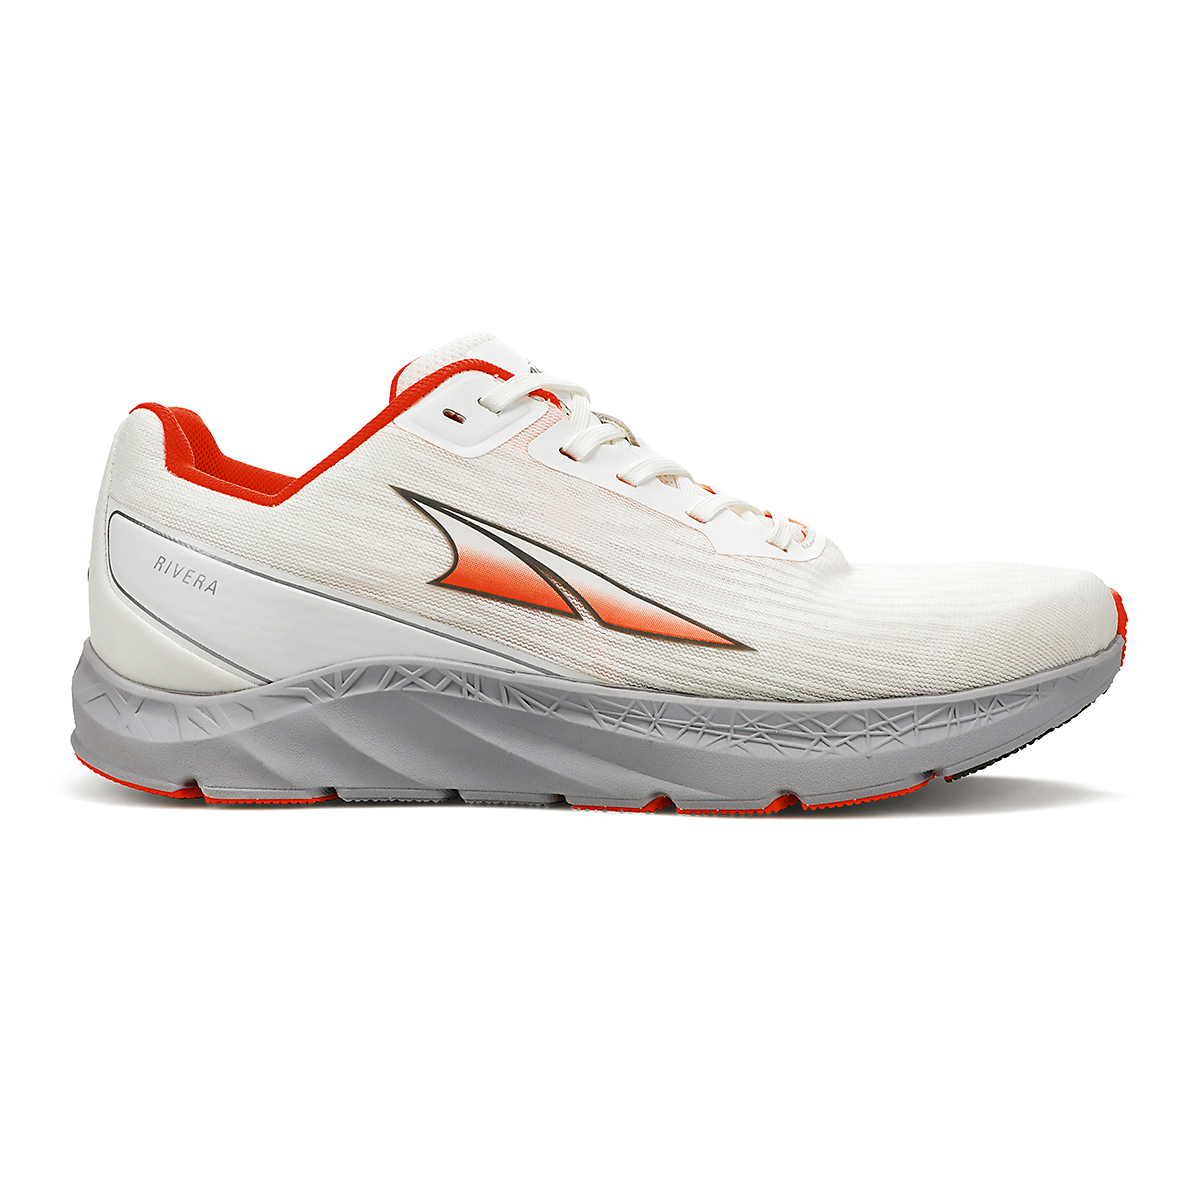 Women's Altra Rivera Running Shoe - Color: White/Coral - Size: 5.5 - Width: Regular, White/Coral, large, image 1